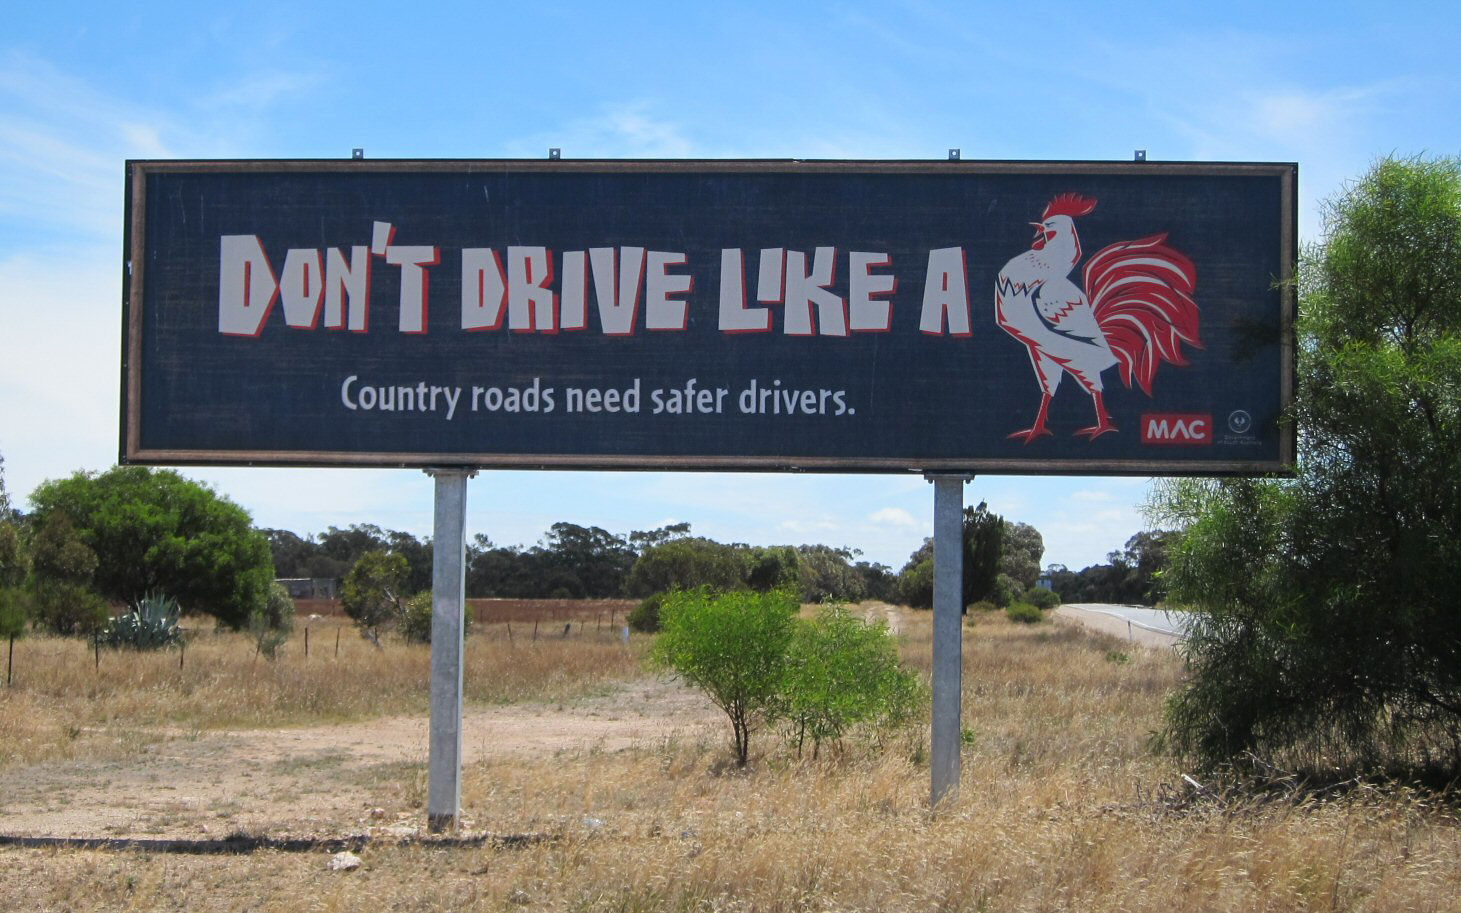 Fun with road safety signs | CyberText Newsletter